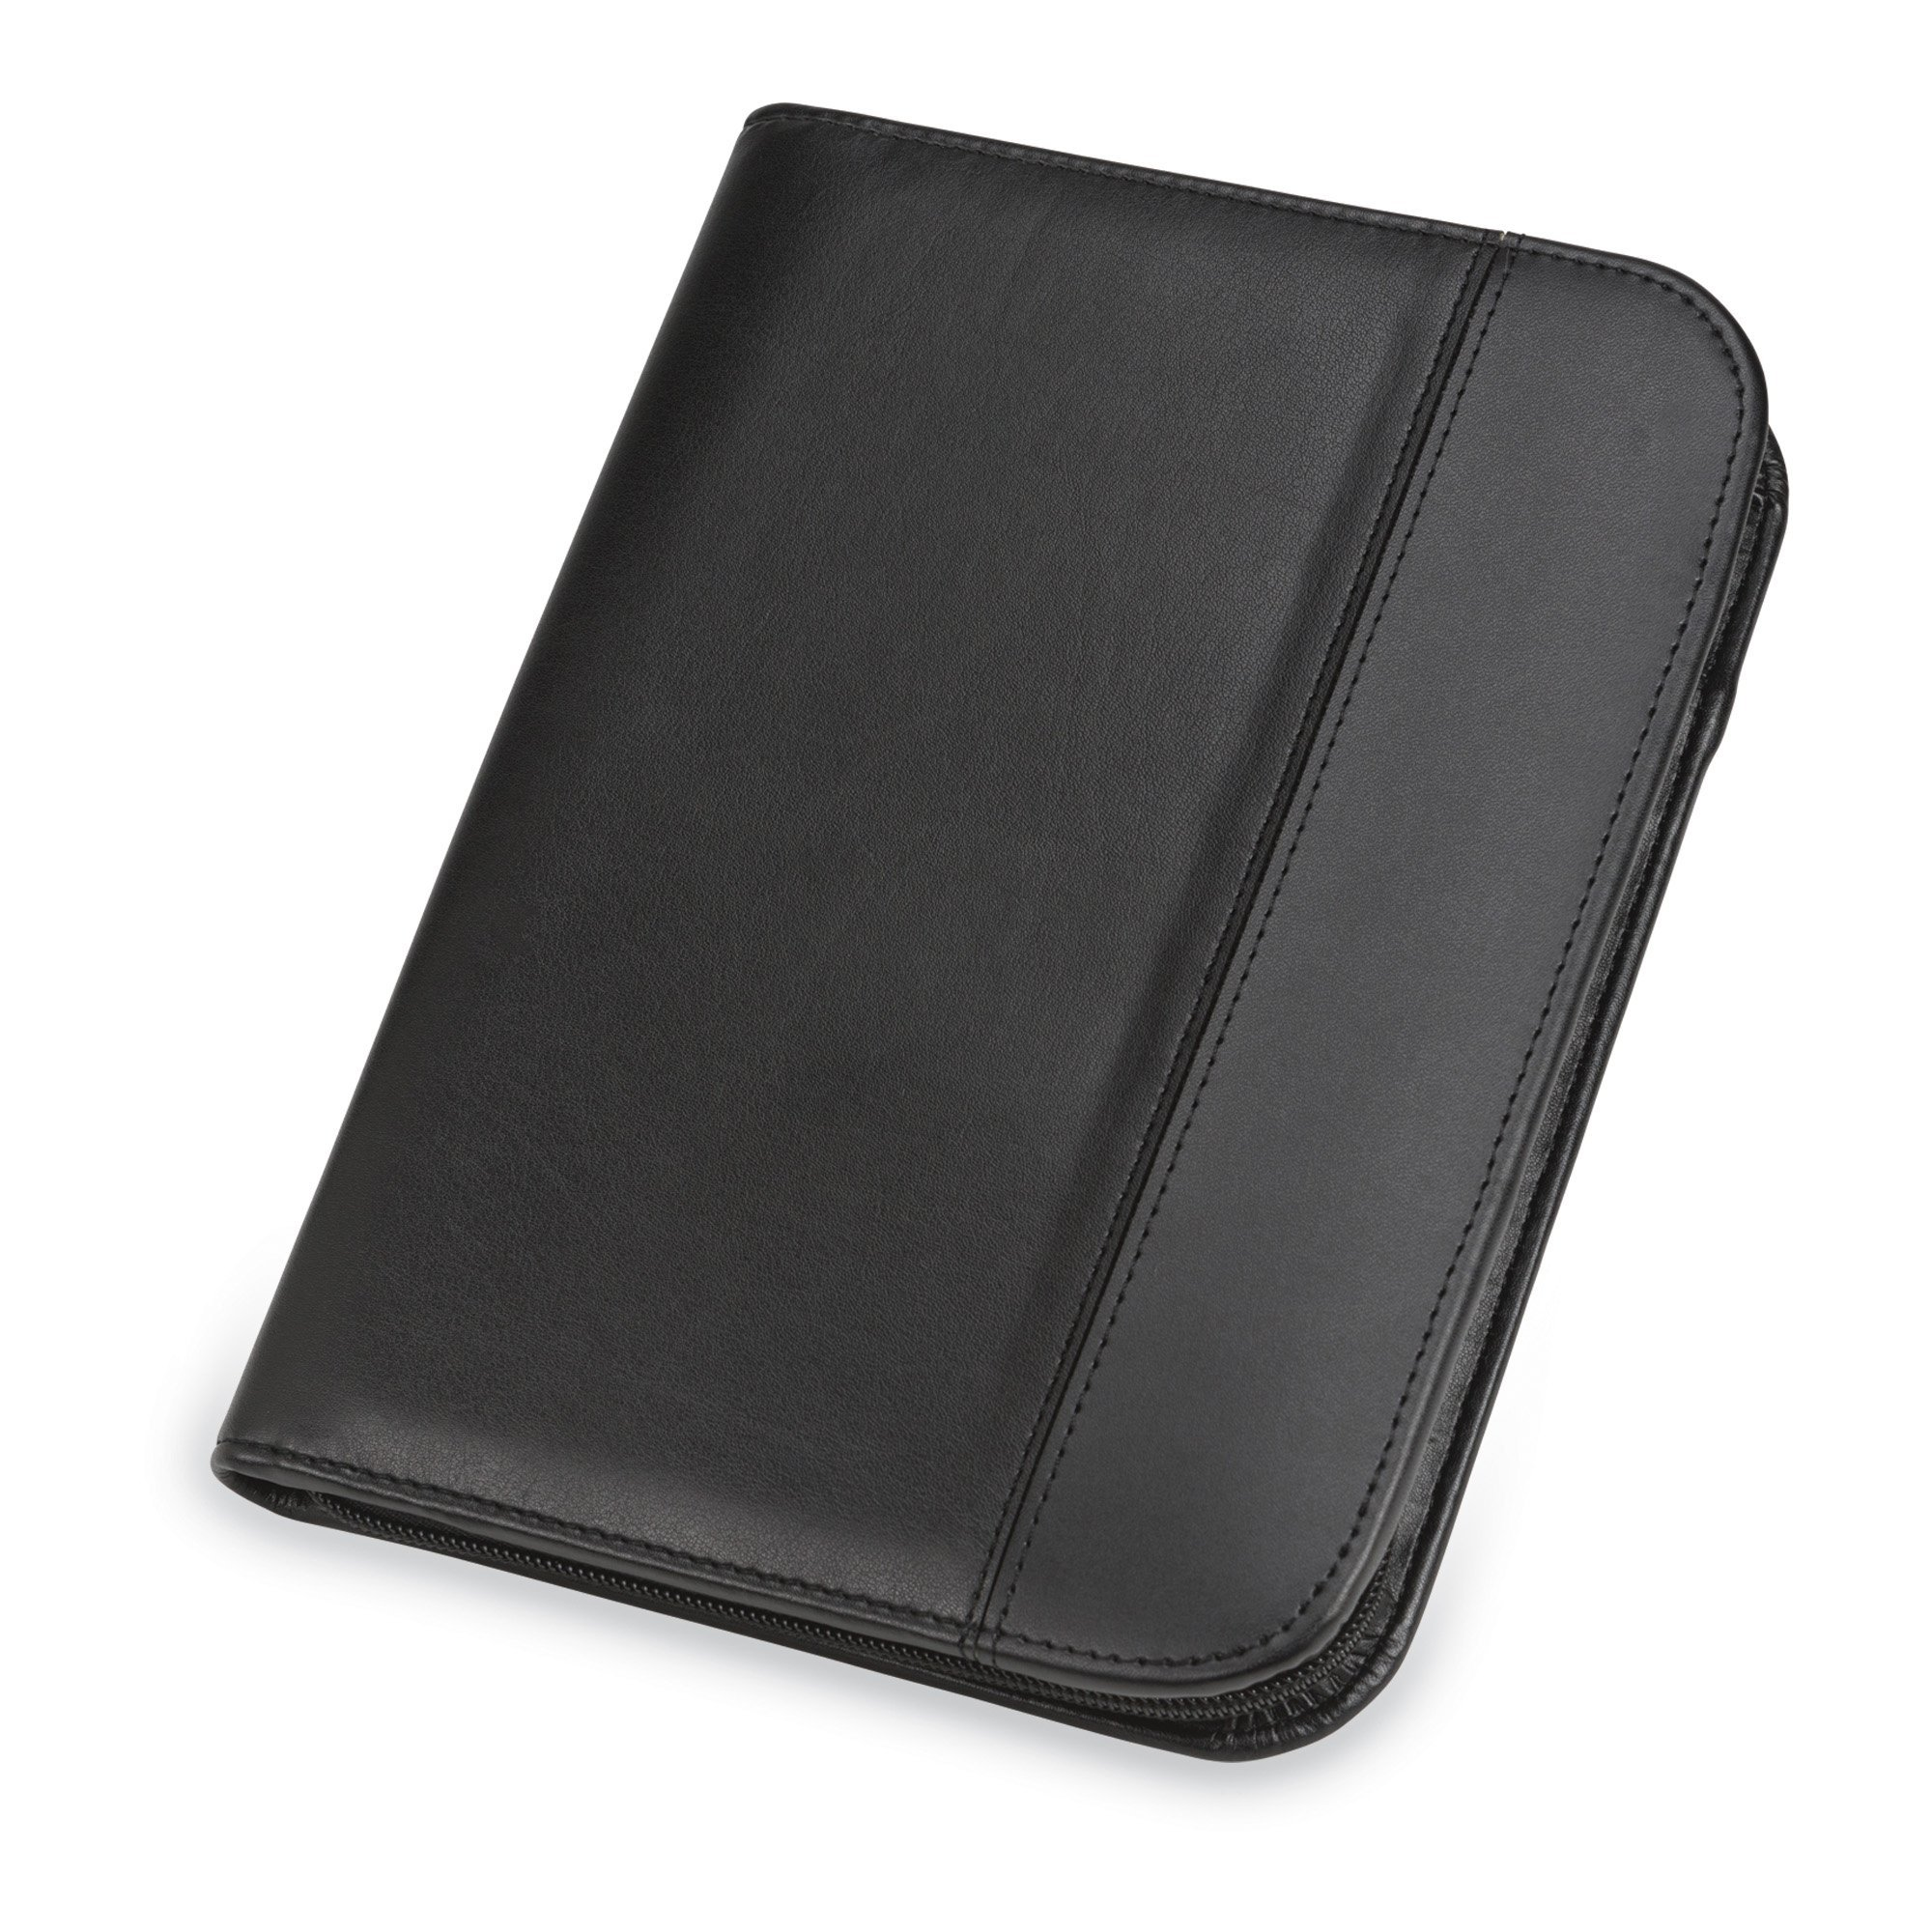 Samsill Leather Trim Business Junior Padfolio/Interview Portfolio with Zippered Closure, 5 inch x 8 inch Writing Pad Included, Black by Samsill